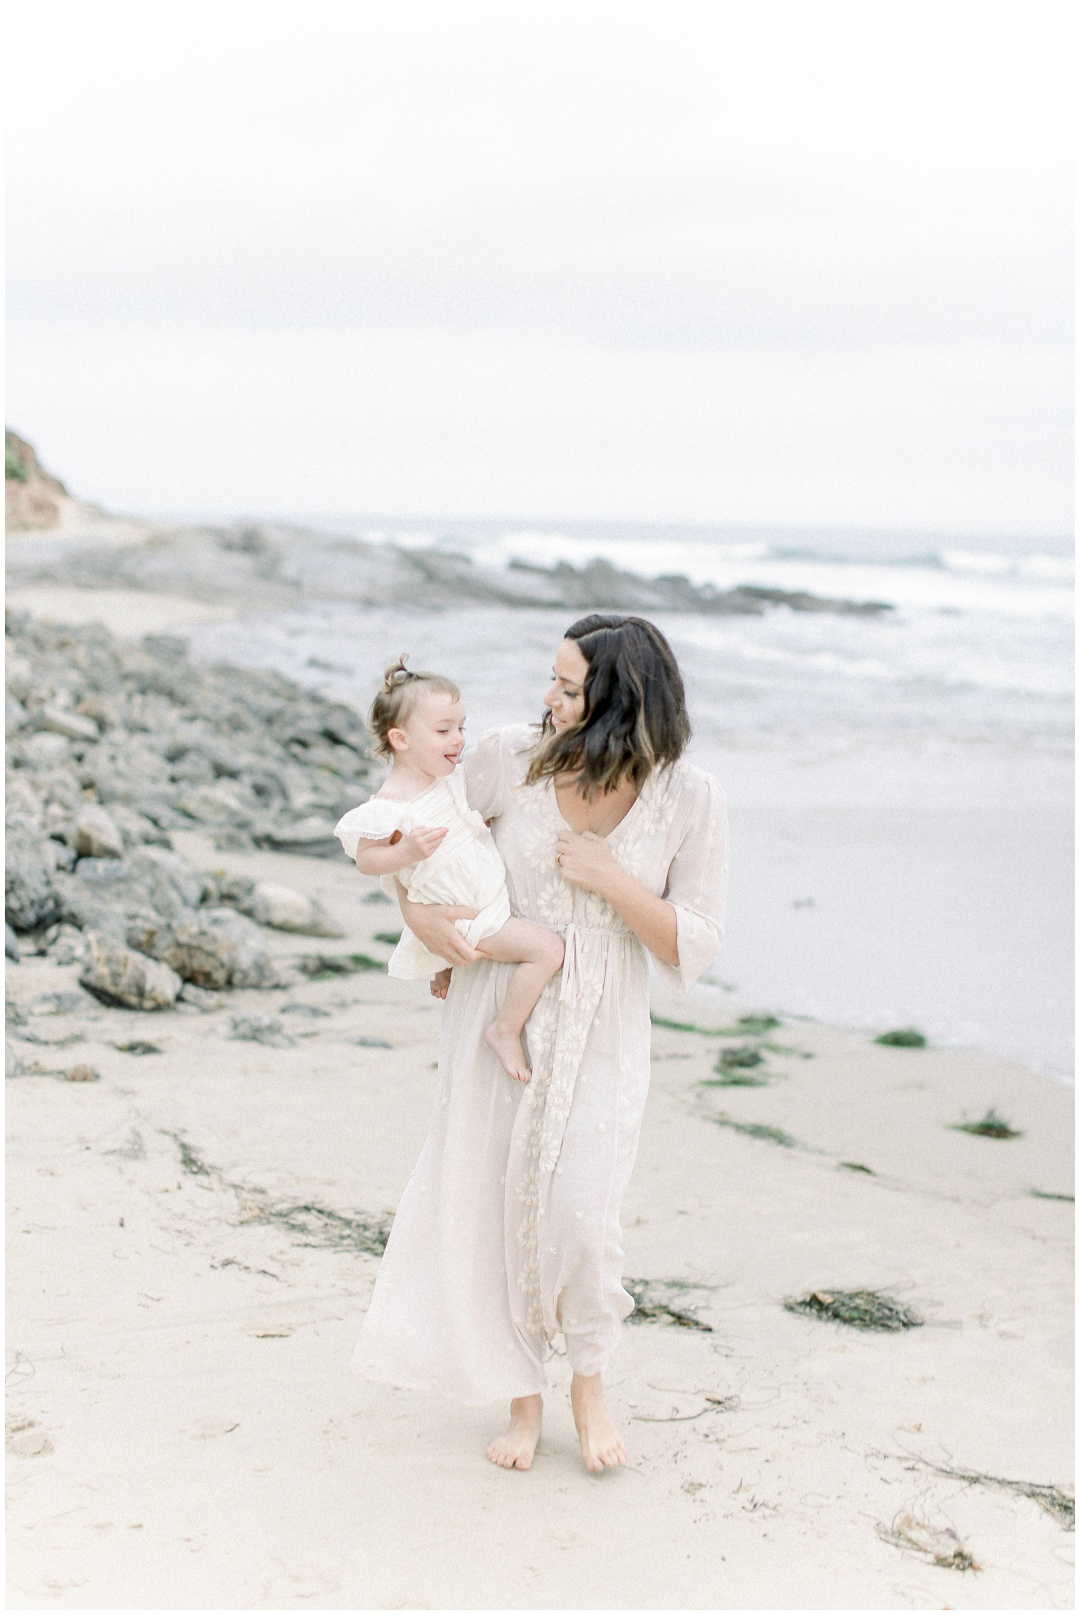 Newport_Beach_Newborn_Light_Airy_Natural_Photographer_Newport_Beach_Photographer_Orange_County_Family_Photographer_Cori_Kleckner_Photography_Newport_Beach_Photographer_Alexis_McElwee__4037.jpg